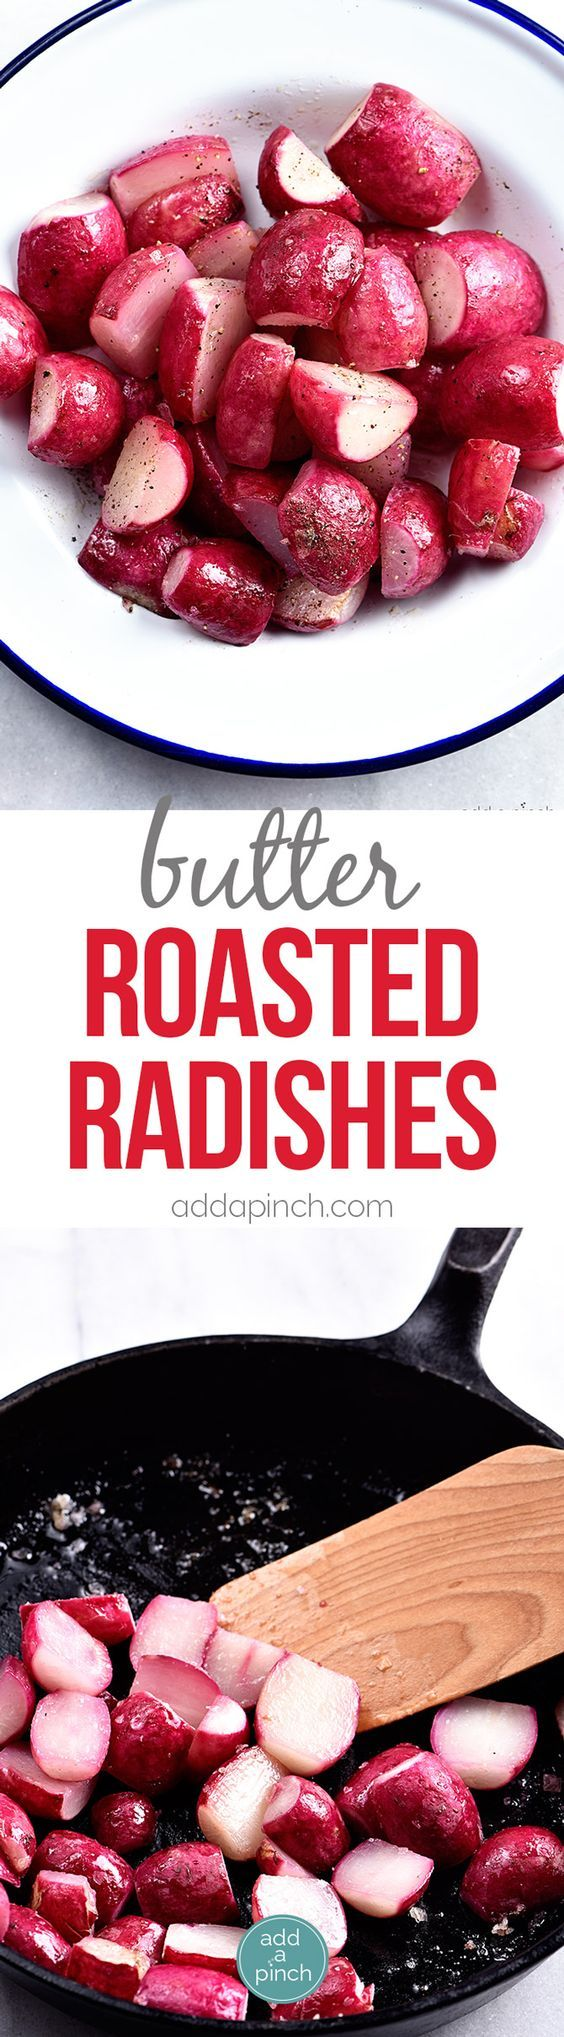 Butter Roasted Radishes Recipe  Roasting radishes makes radishes more mild in flavor yet rich and delicious! Perfect as a side dish topping for salads or a snack!